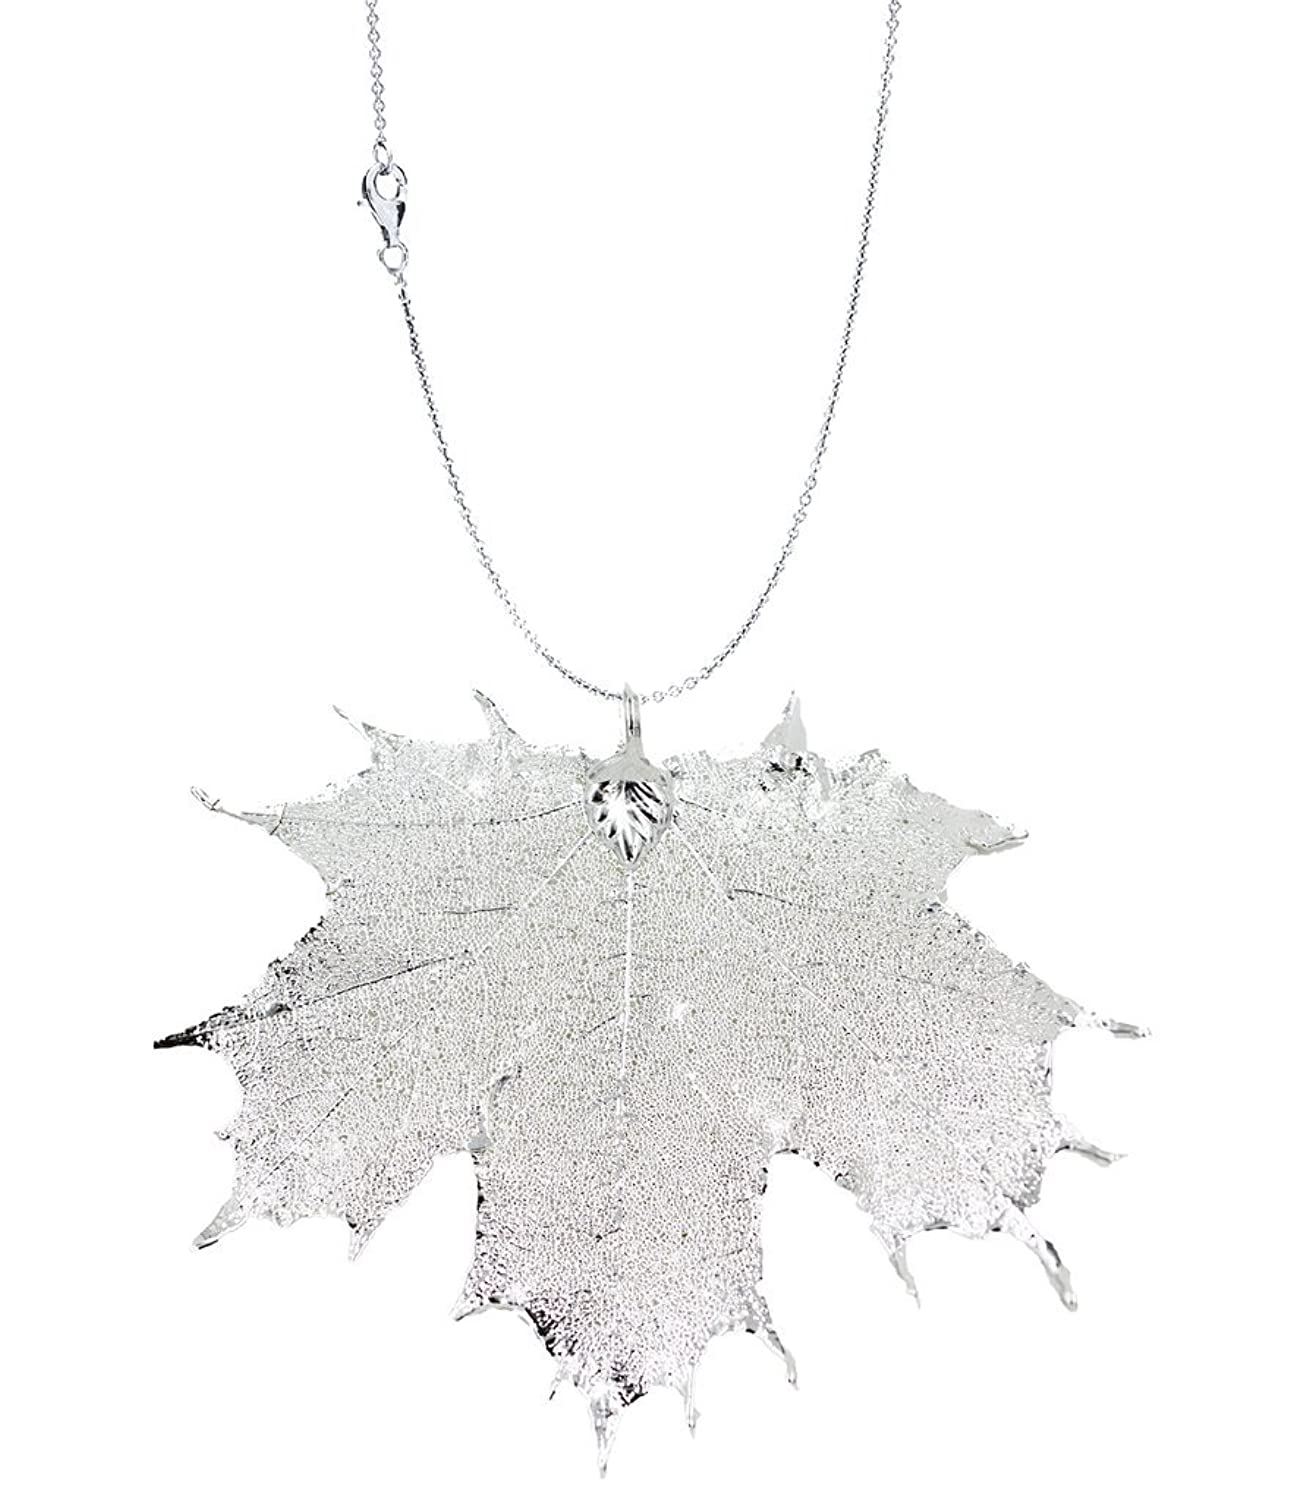 online museum natural necklace shop iridescent leaf history maple